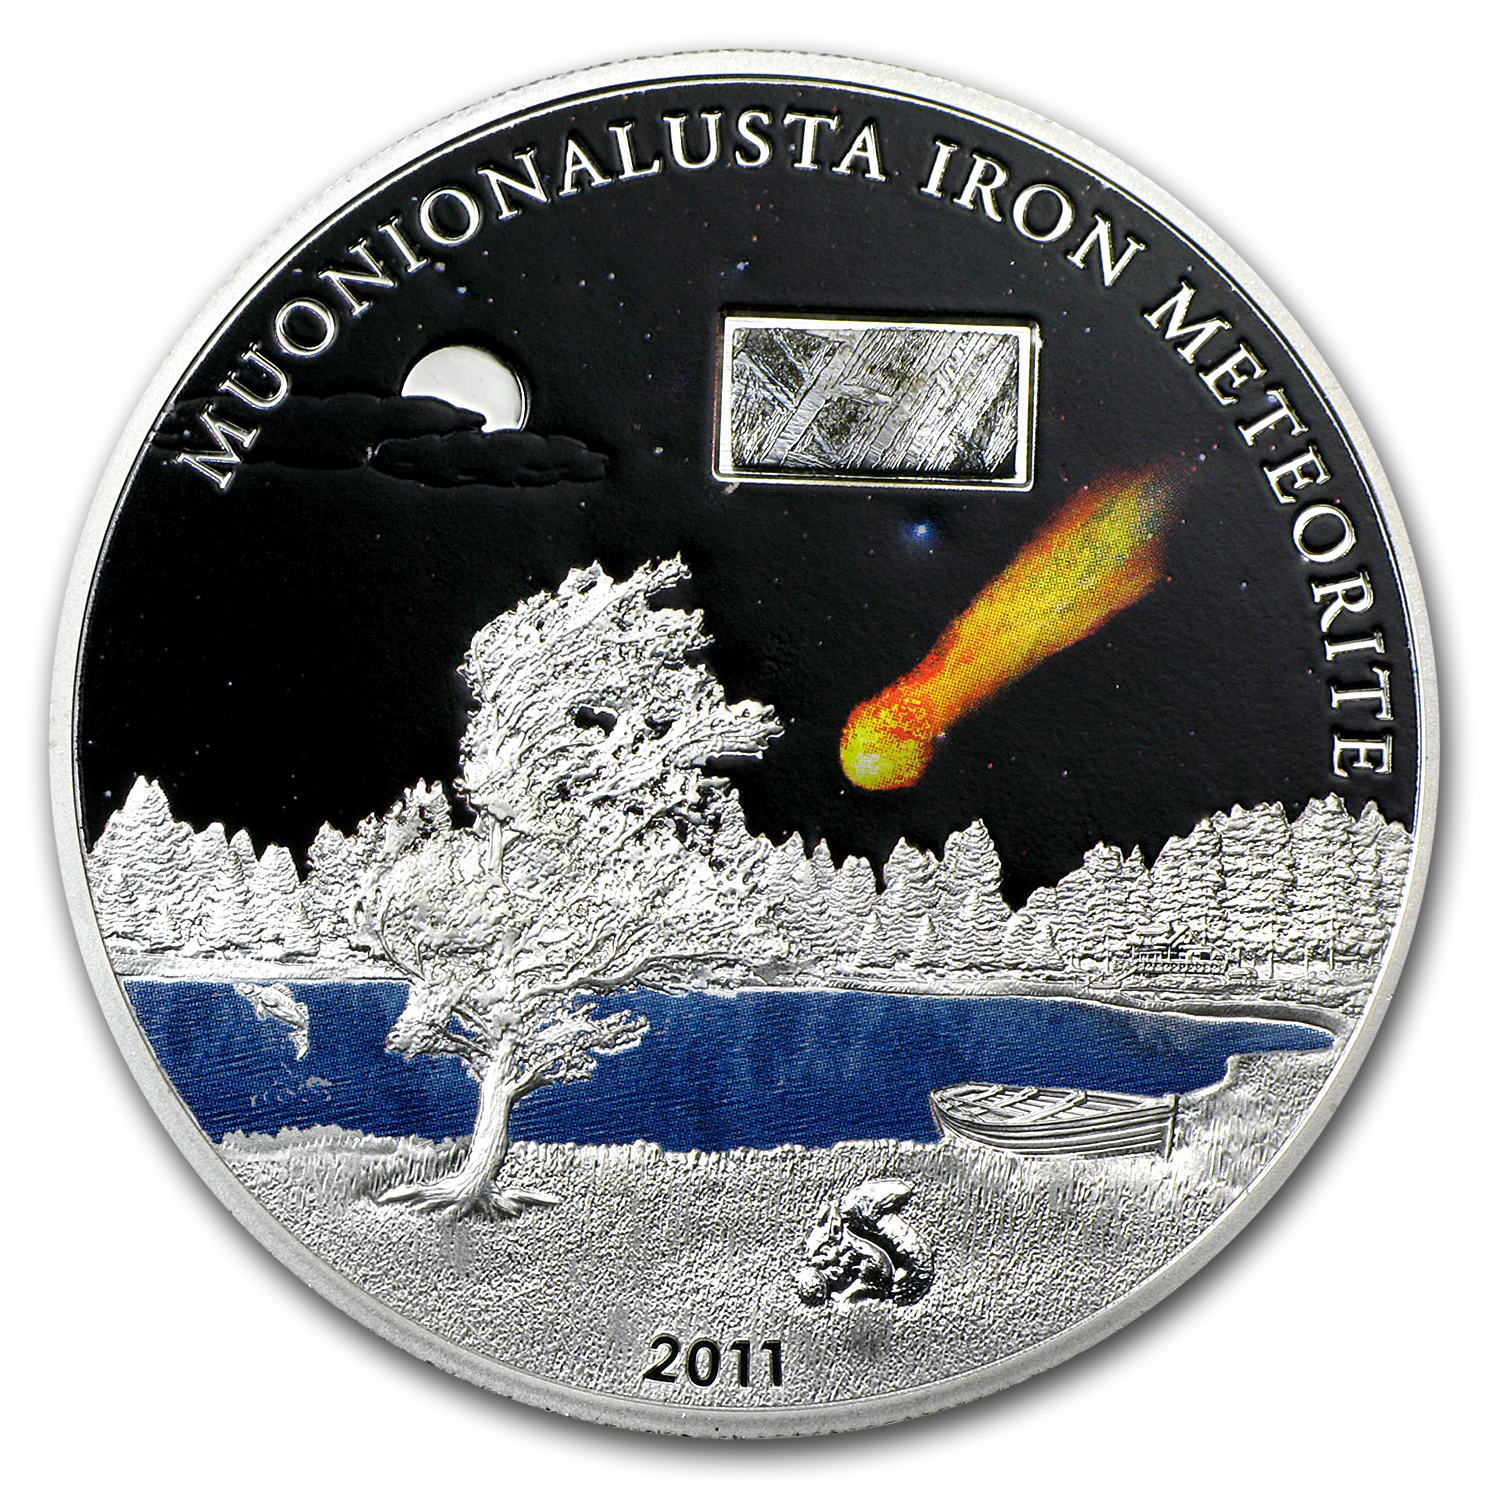 2011 Cook Islands Proof Silver $5 Muonionalusta Iron Meteorite